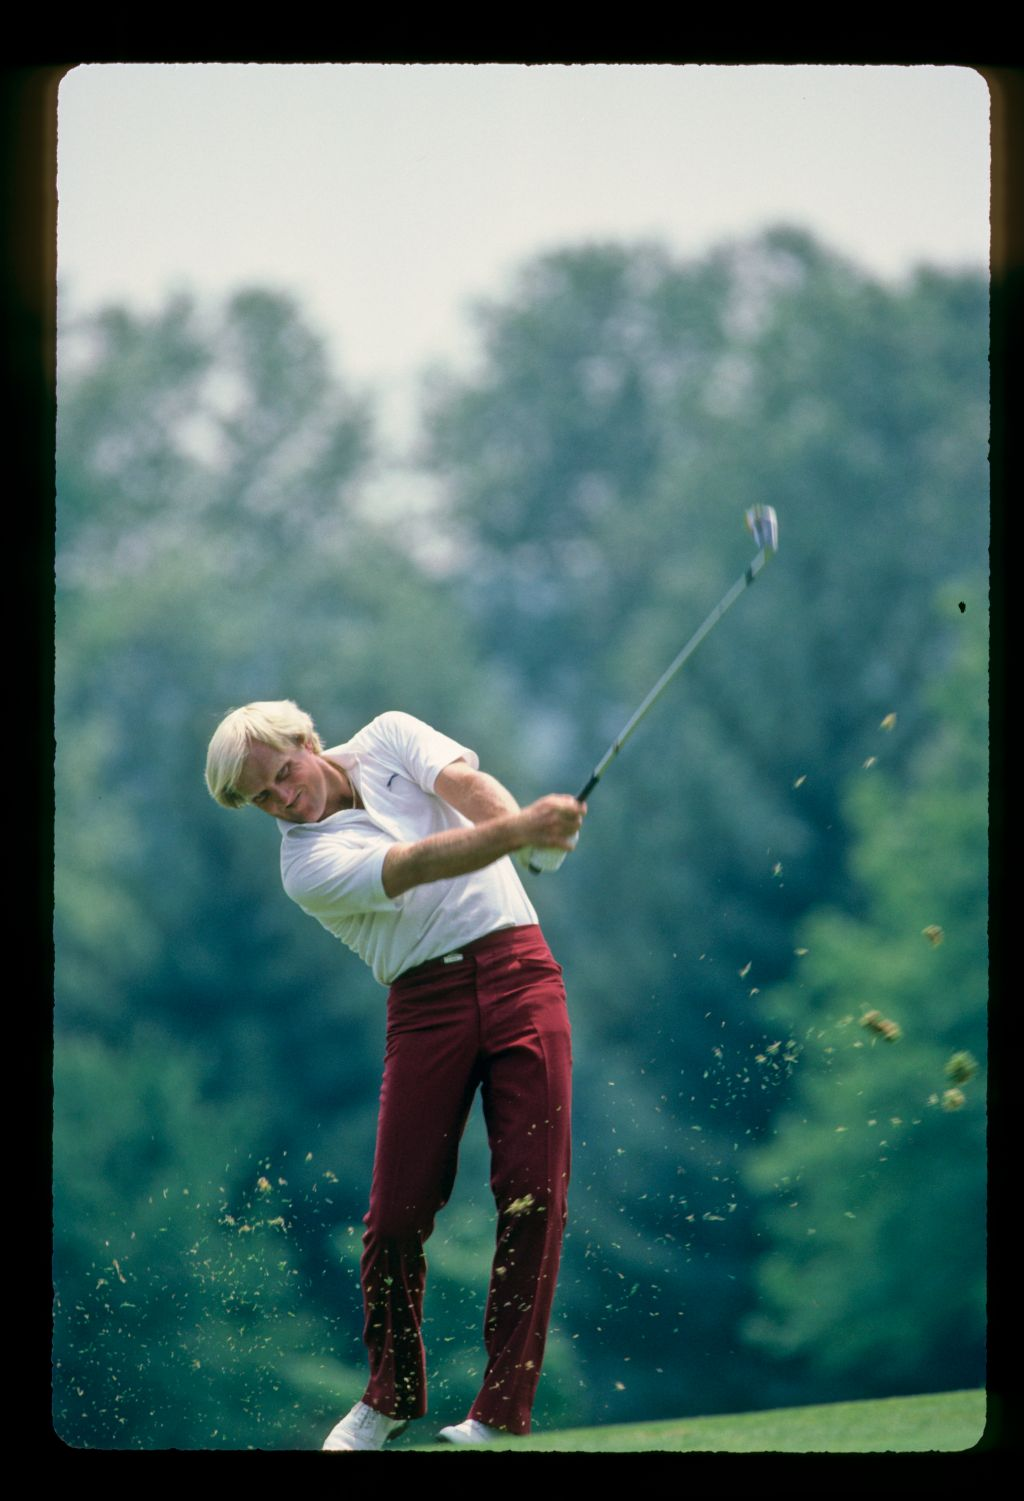 Greg Norman plays his iron shot from the fairway at the U. S. Open Championship